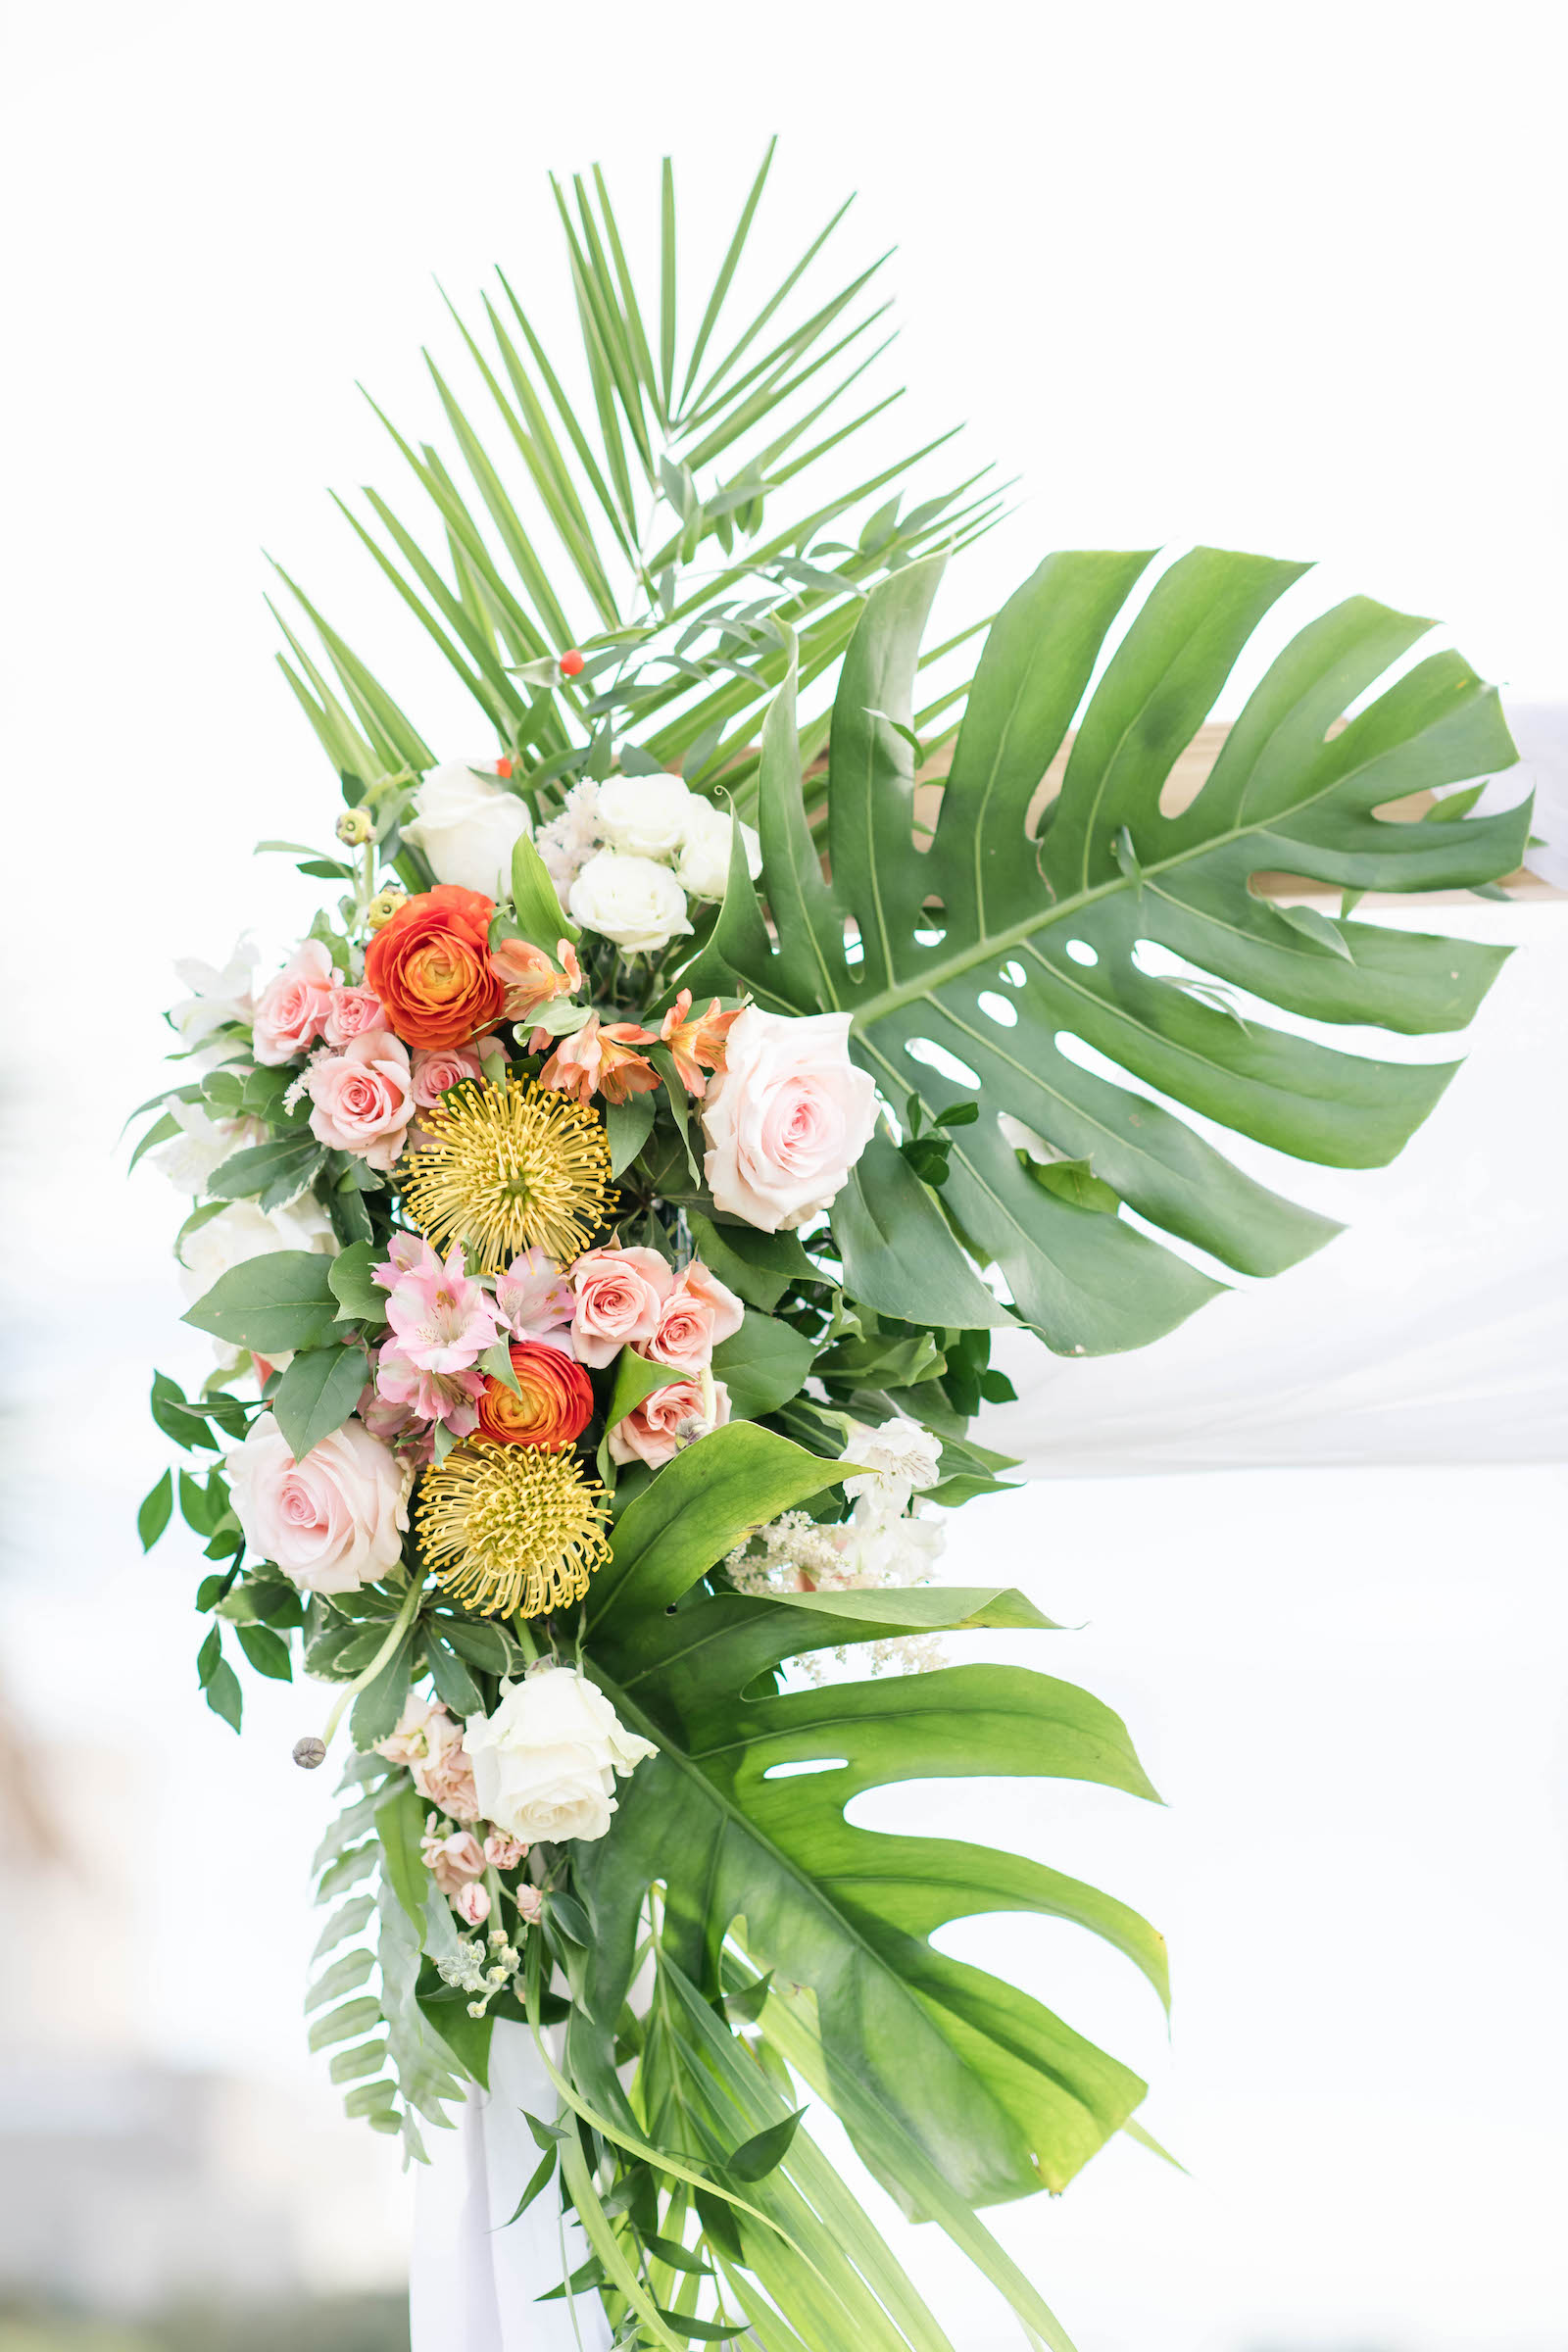 Tropical Wedding Ceremony Decor, Monstera and Palm Fronds, Pink and White Roses, Yellow Pincushion Proteas, Orange Floral Arrangement on Arch | Tampa Bay Wedding Planner Coastal Coordinating